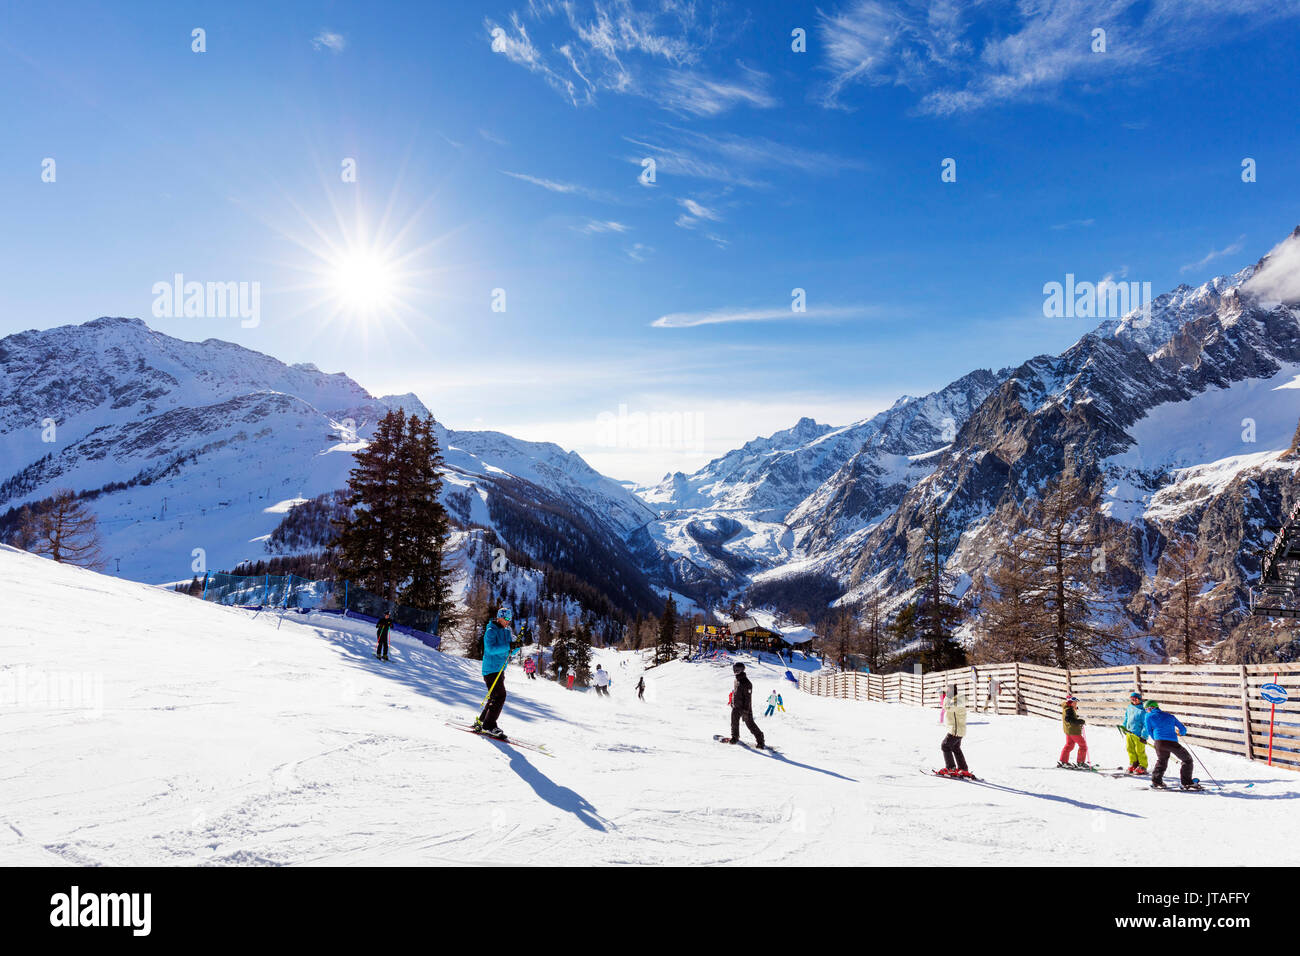 Courmayeur ski resort, Aosta Valley, Italian Alps, Italy, Europe - Stock Image